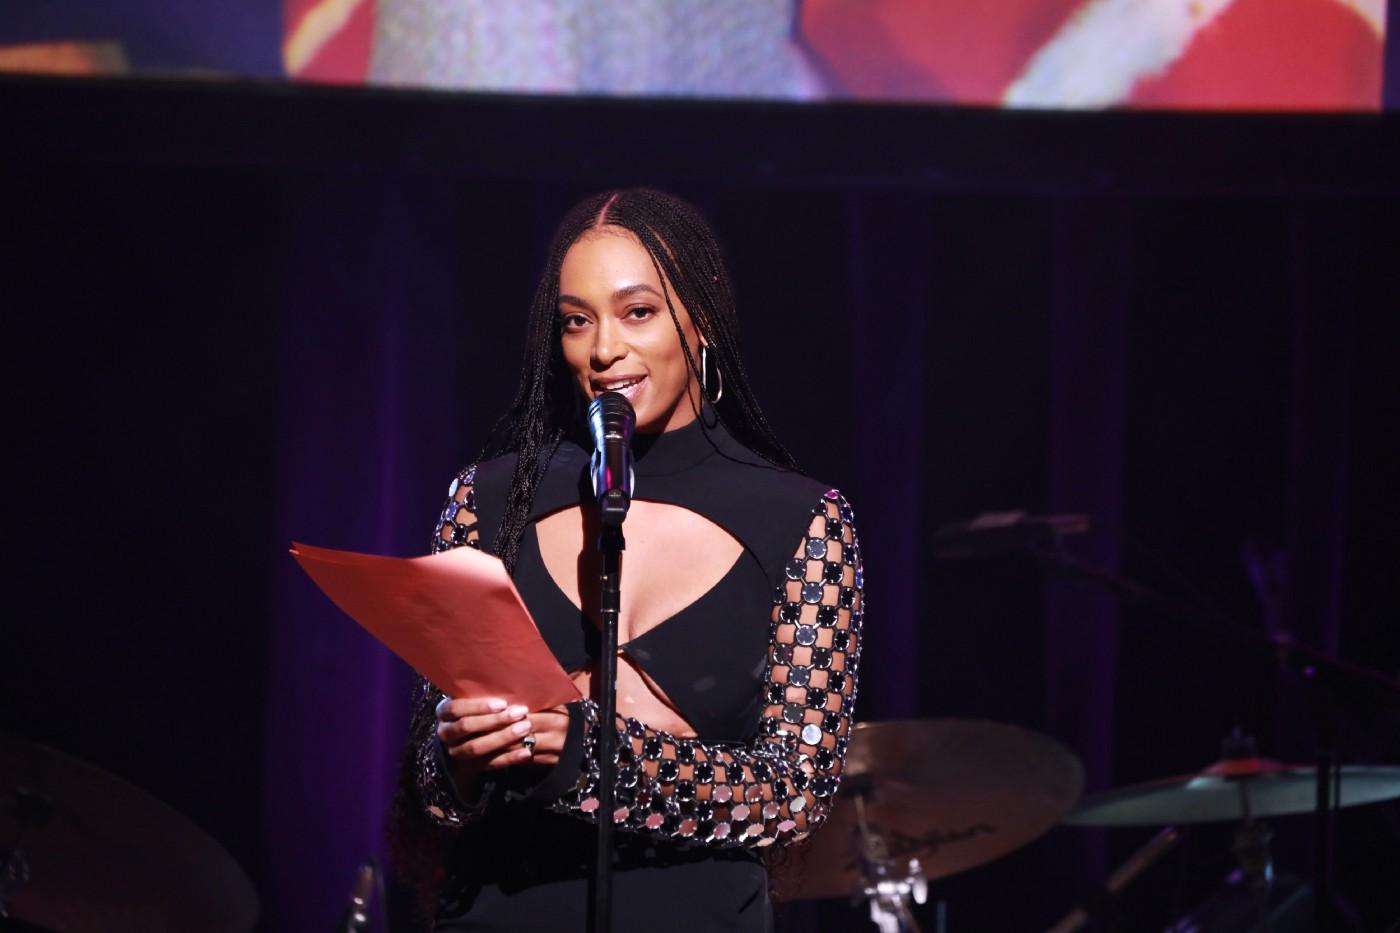 Solange accepting an award at an event.